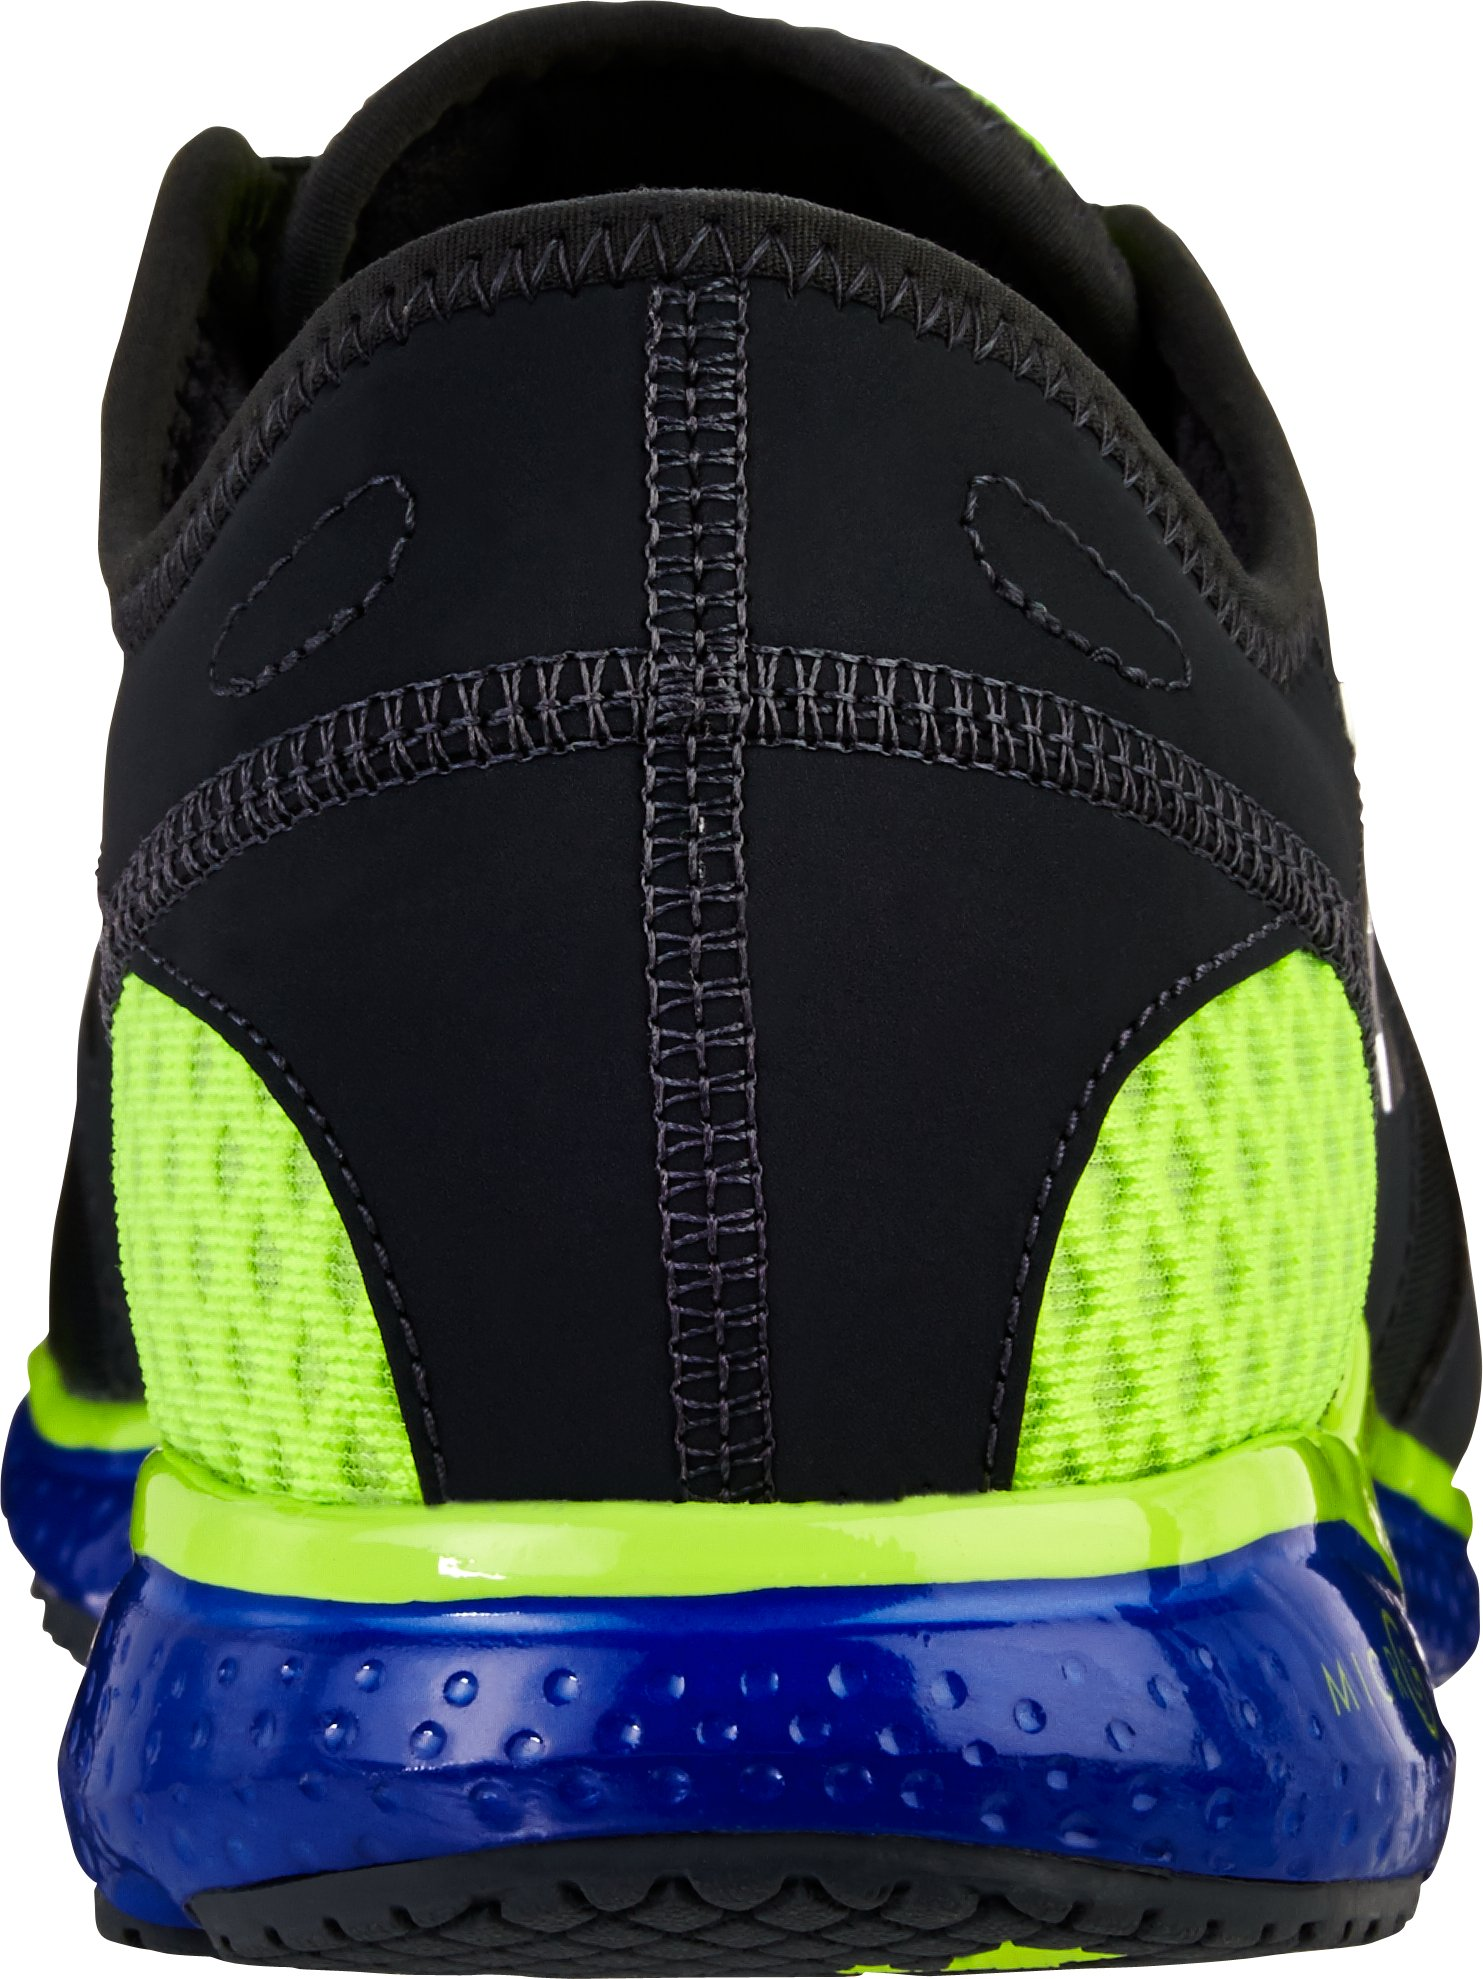 Men's Micro G® Neo Mantis Running Shoes, HYPER GREEN